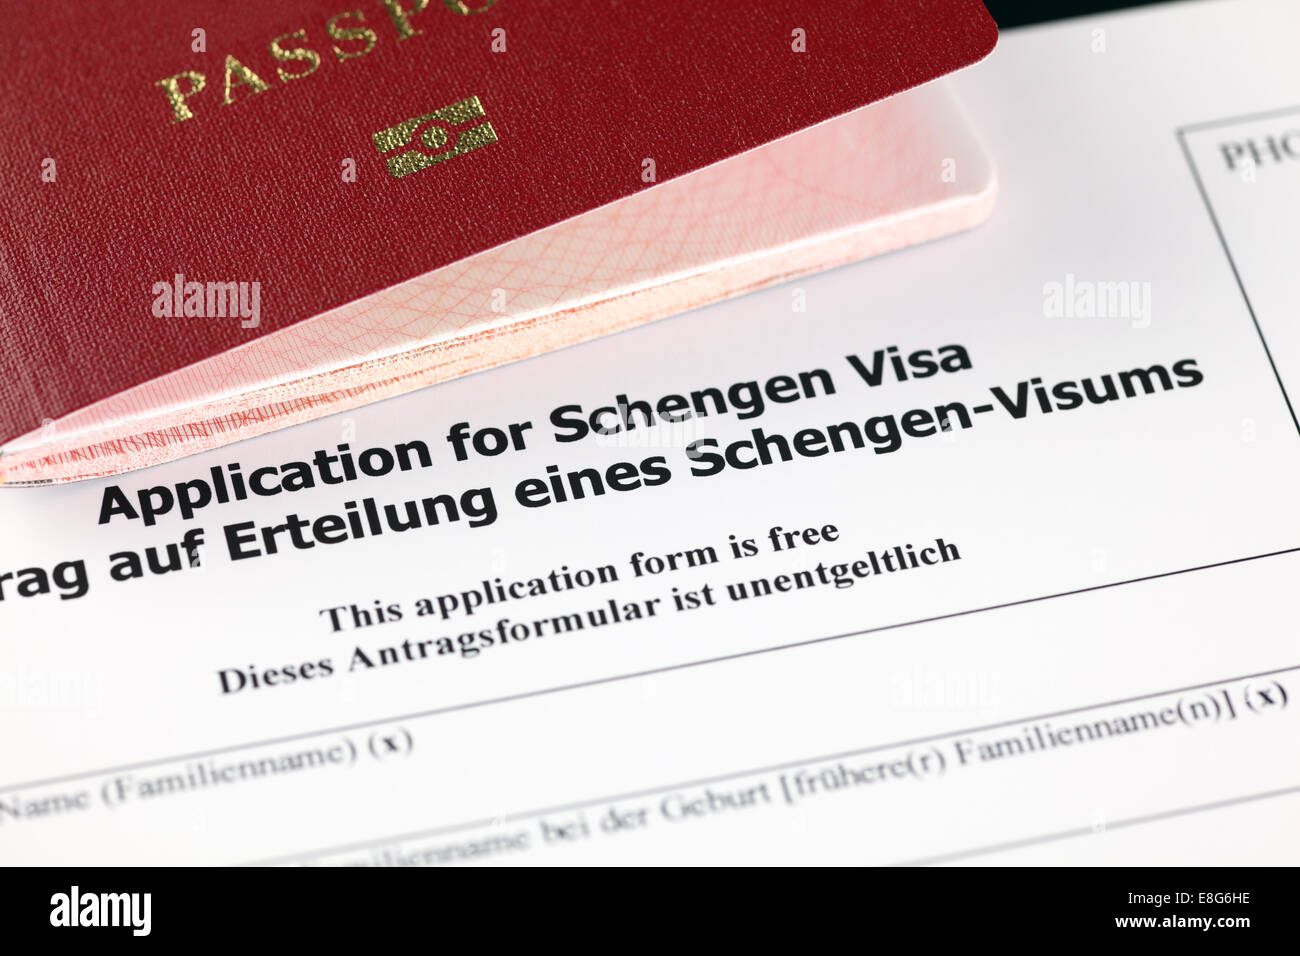 application for schengen visa pdf